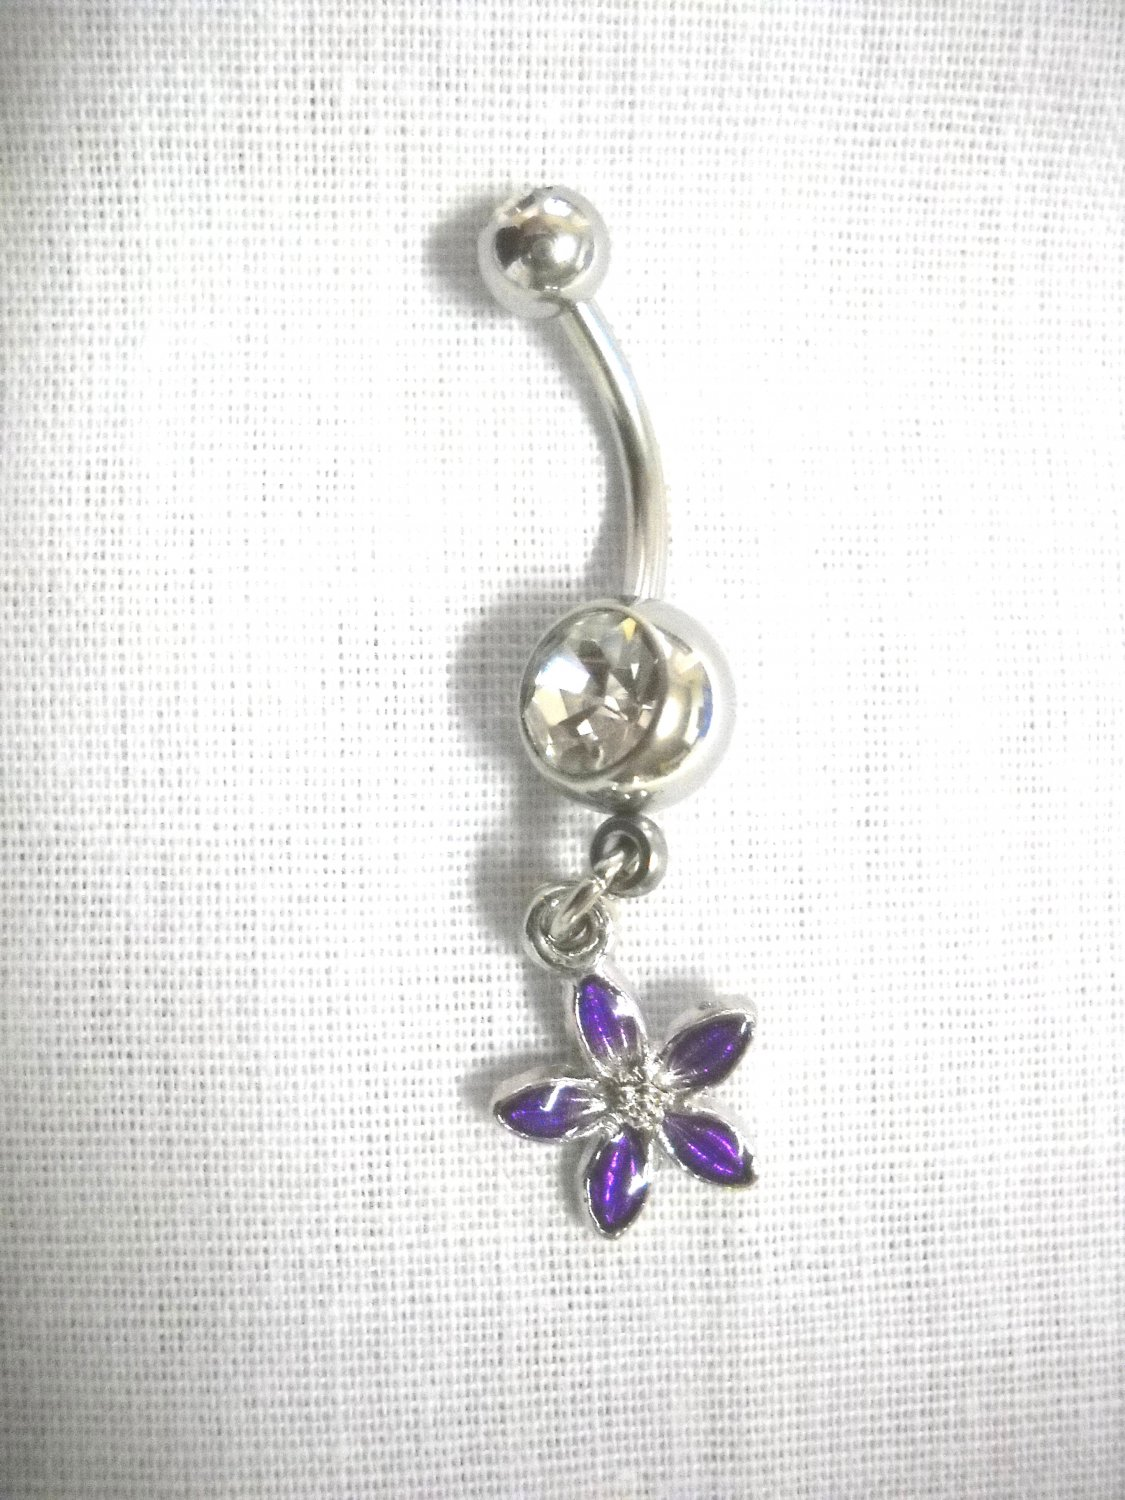 CLEARANCE SMALL PURPLE PETAL FLOWER CHARM CLEAR CZ 14G BELLY RING